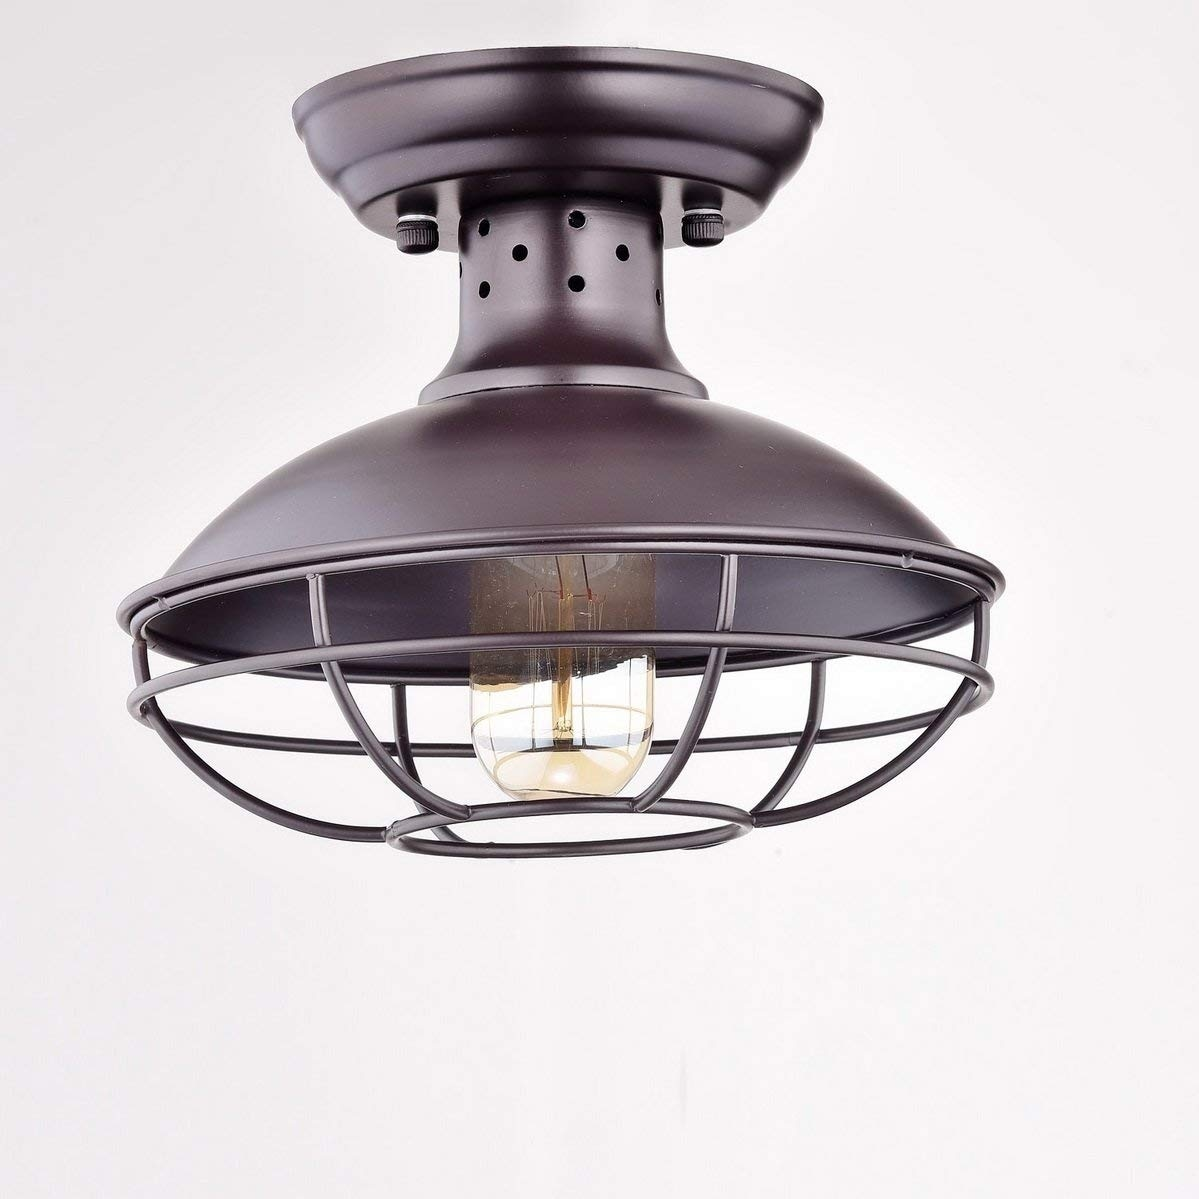 Shop Vintage Industrial Wire Cage Semi Flush Mount Ceiling Light Wiring A New Fixture Bronze Free Shipping Today 24307482